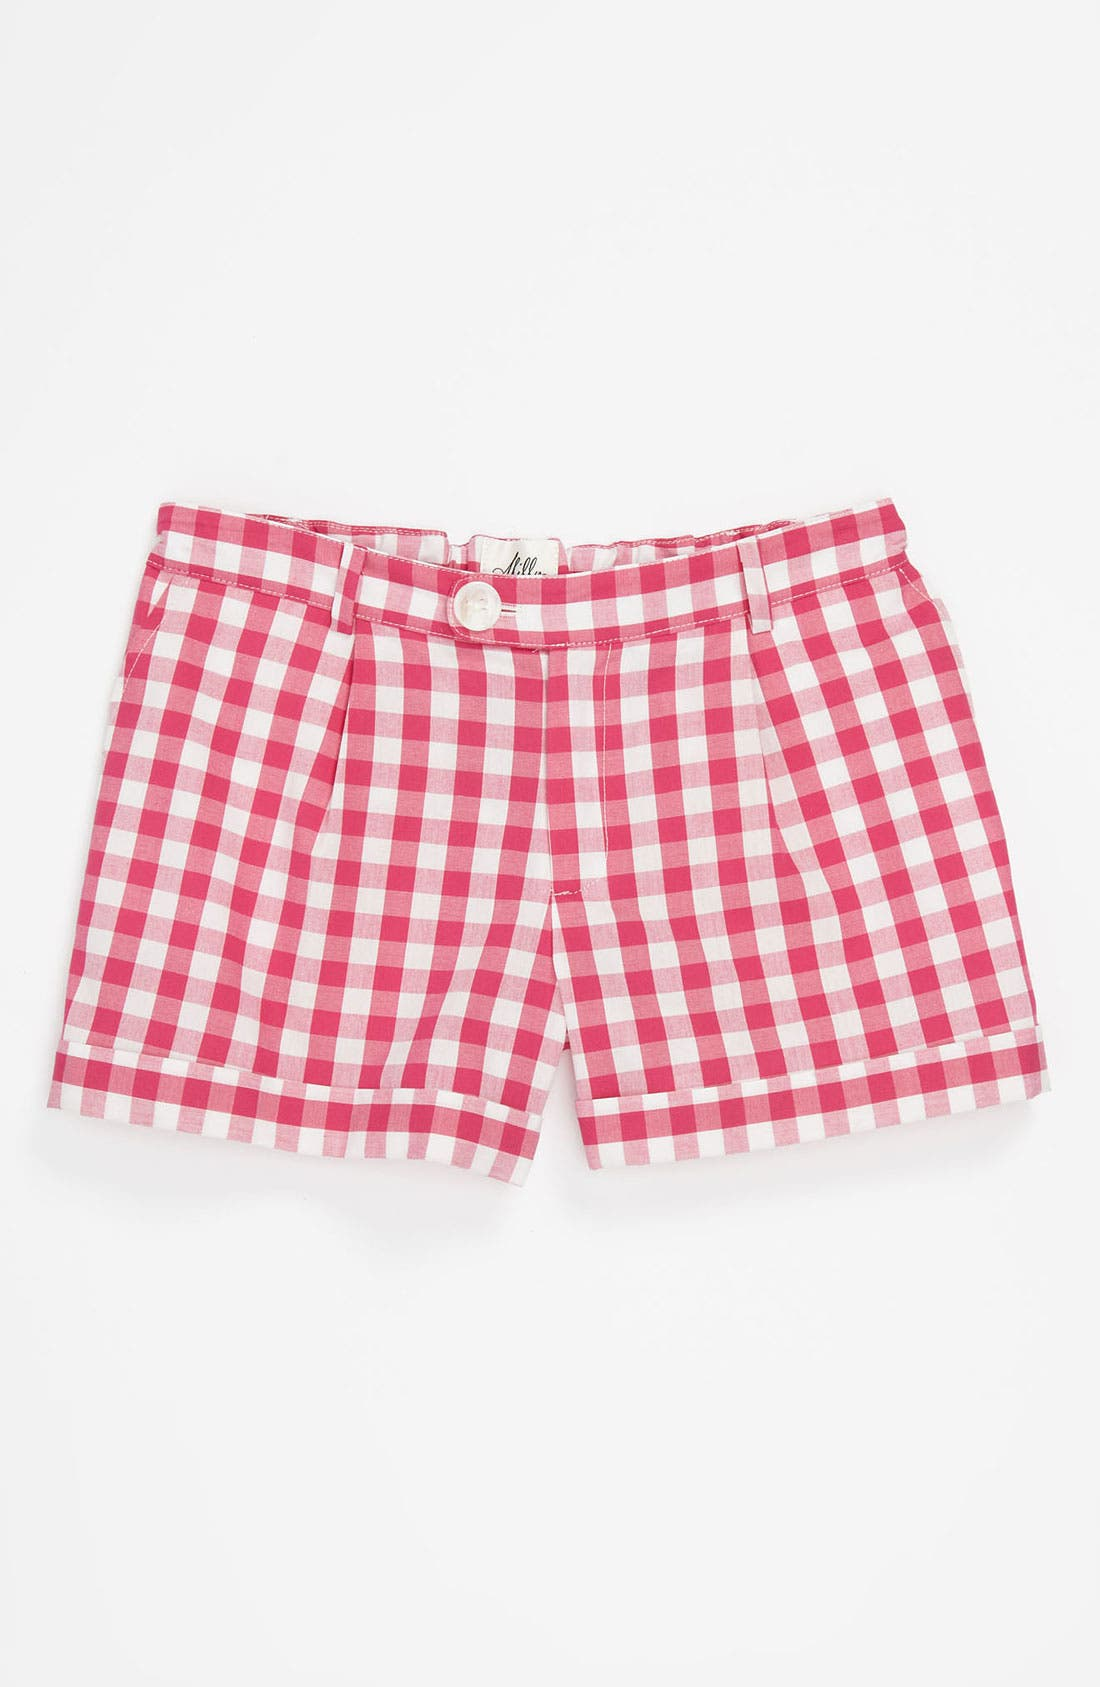 Alternate Image 1 Selected - Milly Minis Vichy Check Bow Pocket Shorts (Little Girls & Big Girls)